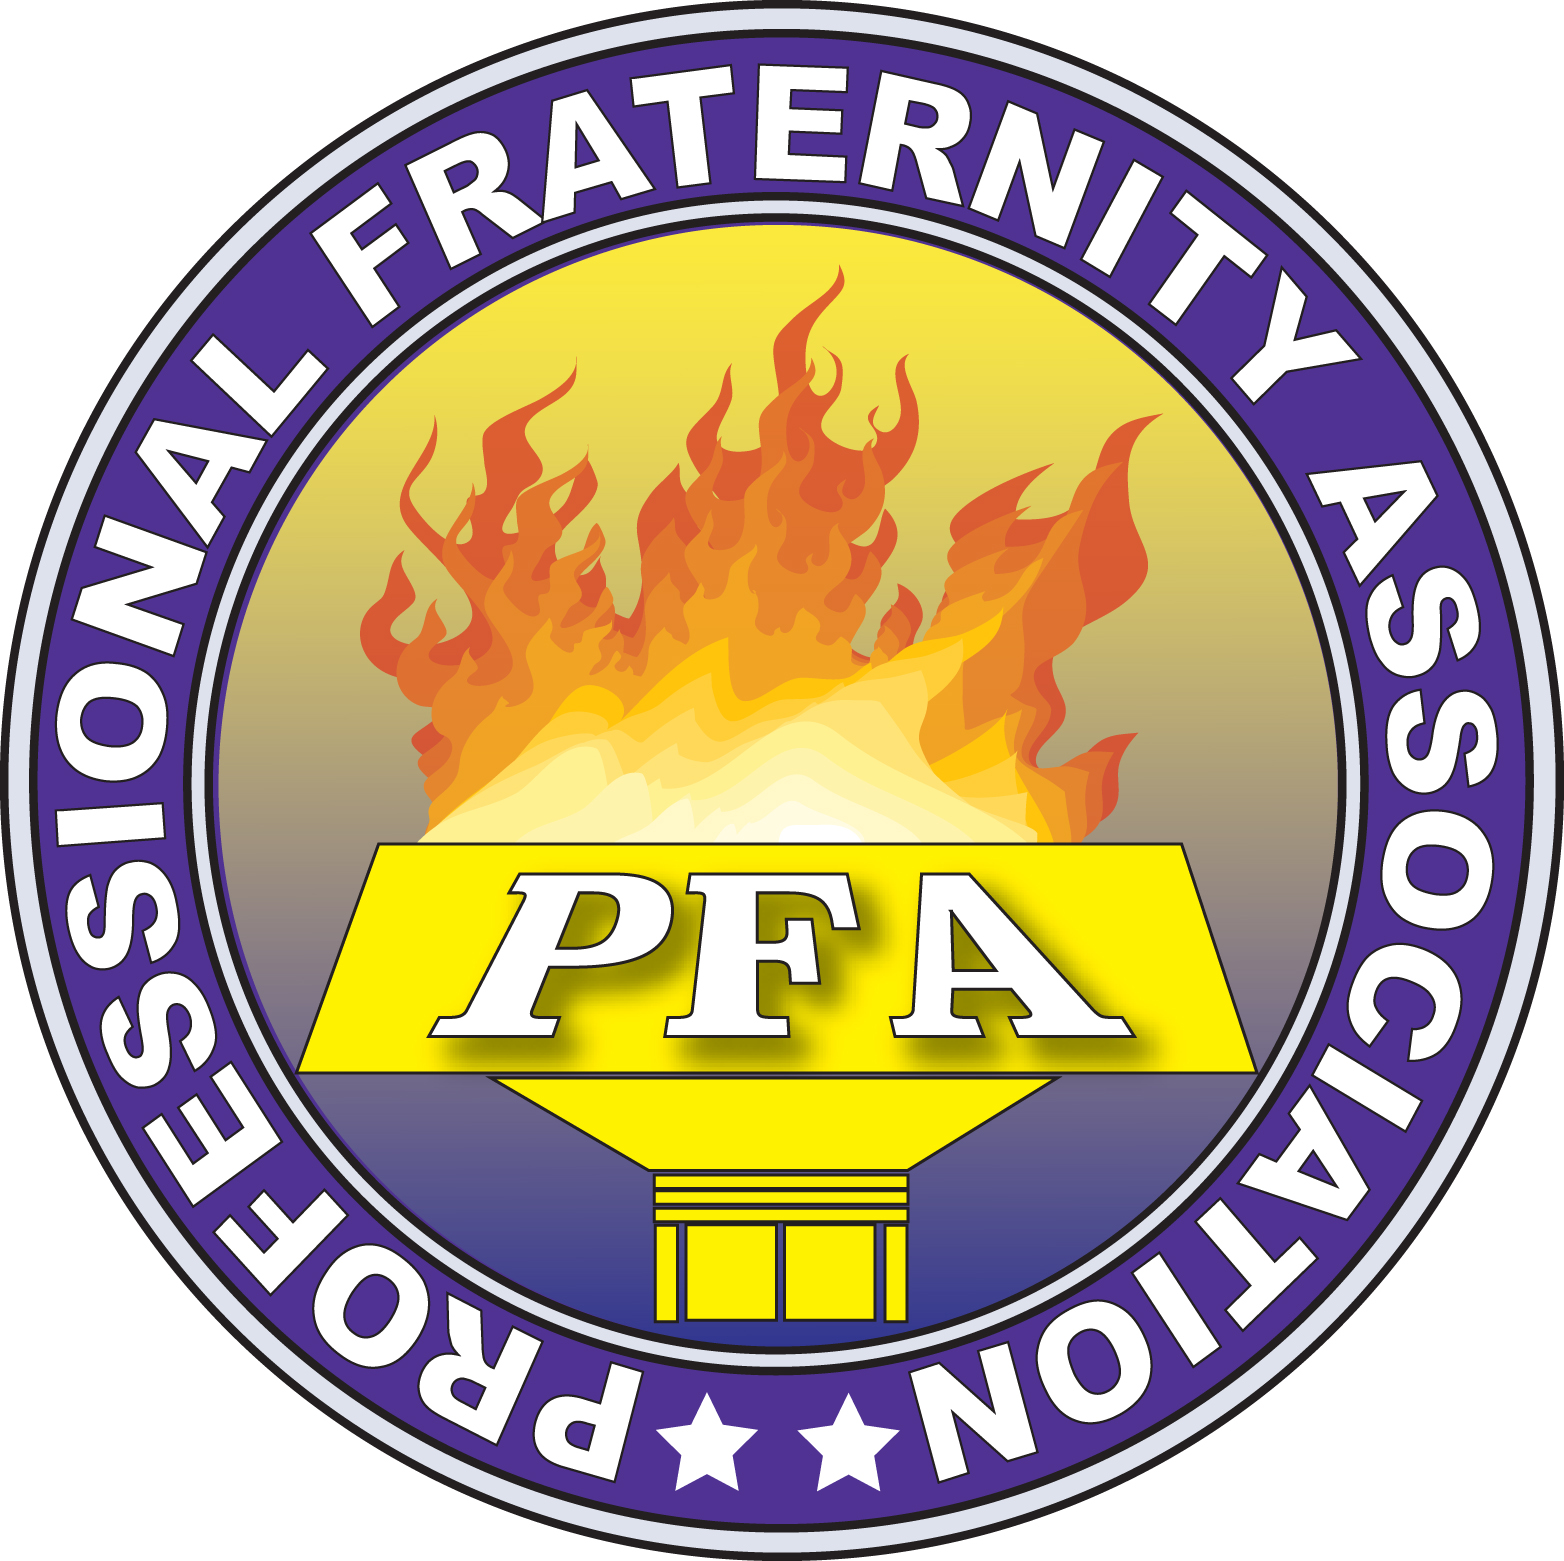 fraternity fraternities and sororities and international Fraternity and sorority has three fraternities and three sororities that make up fraternity, inc is the first international fraternal.